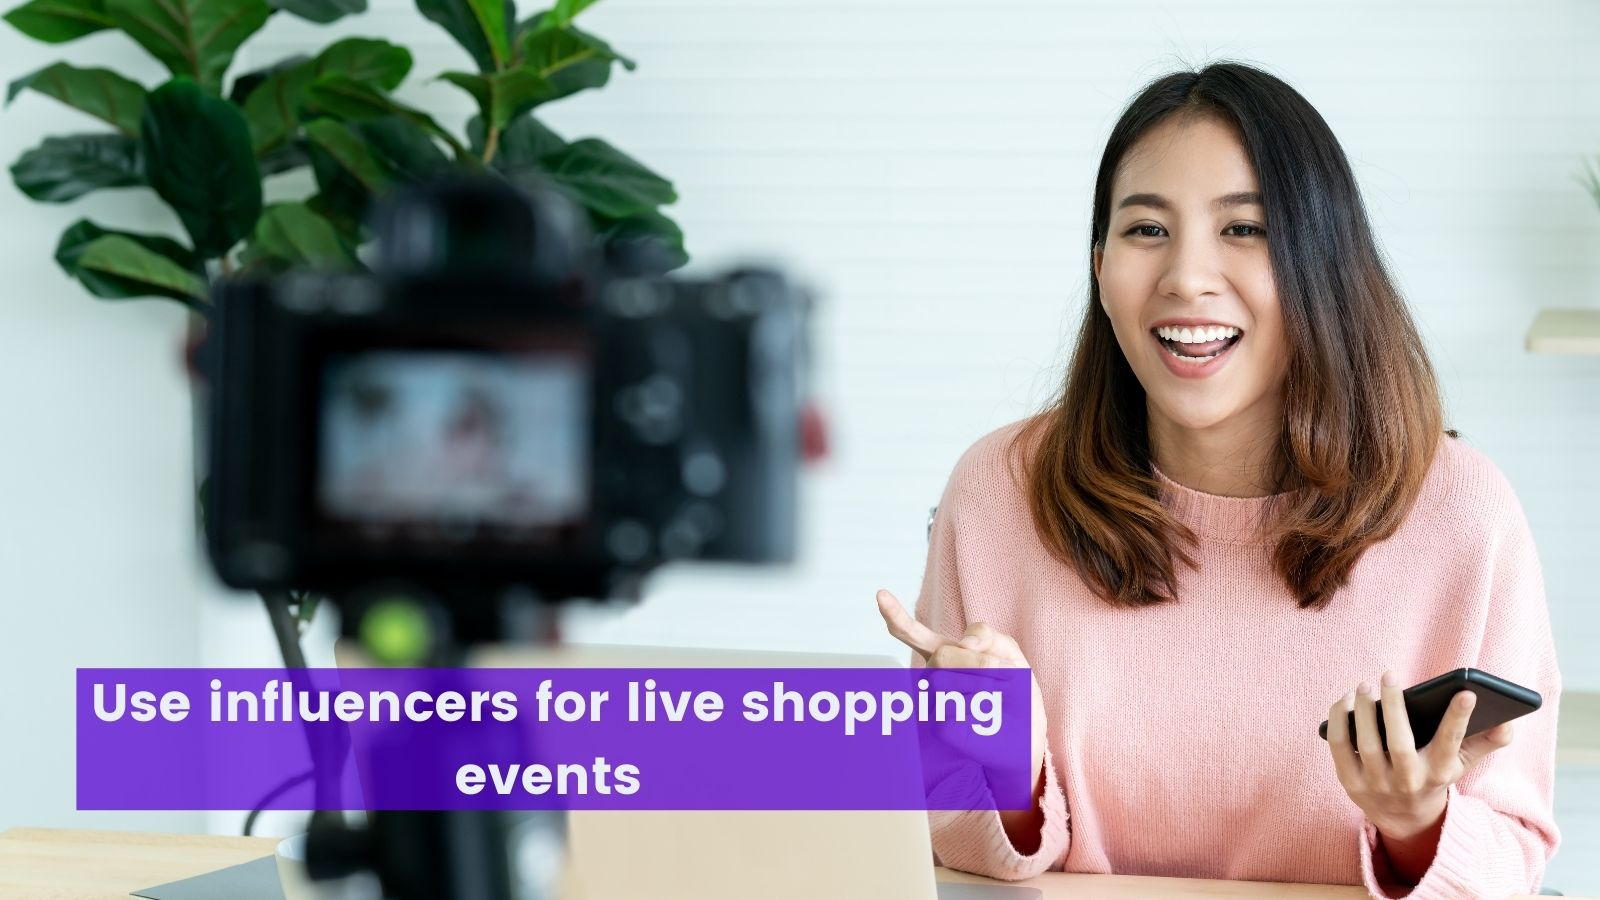 Use influencers for live shopping events on agilitycms.com